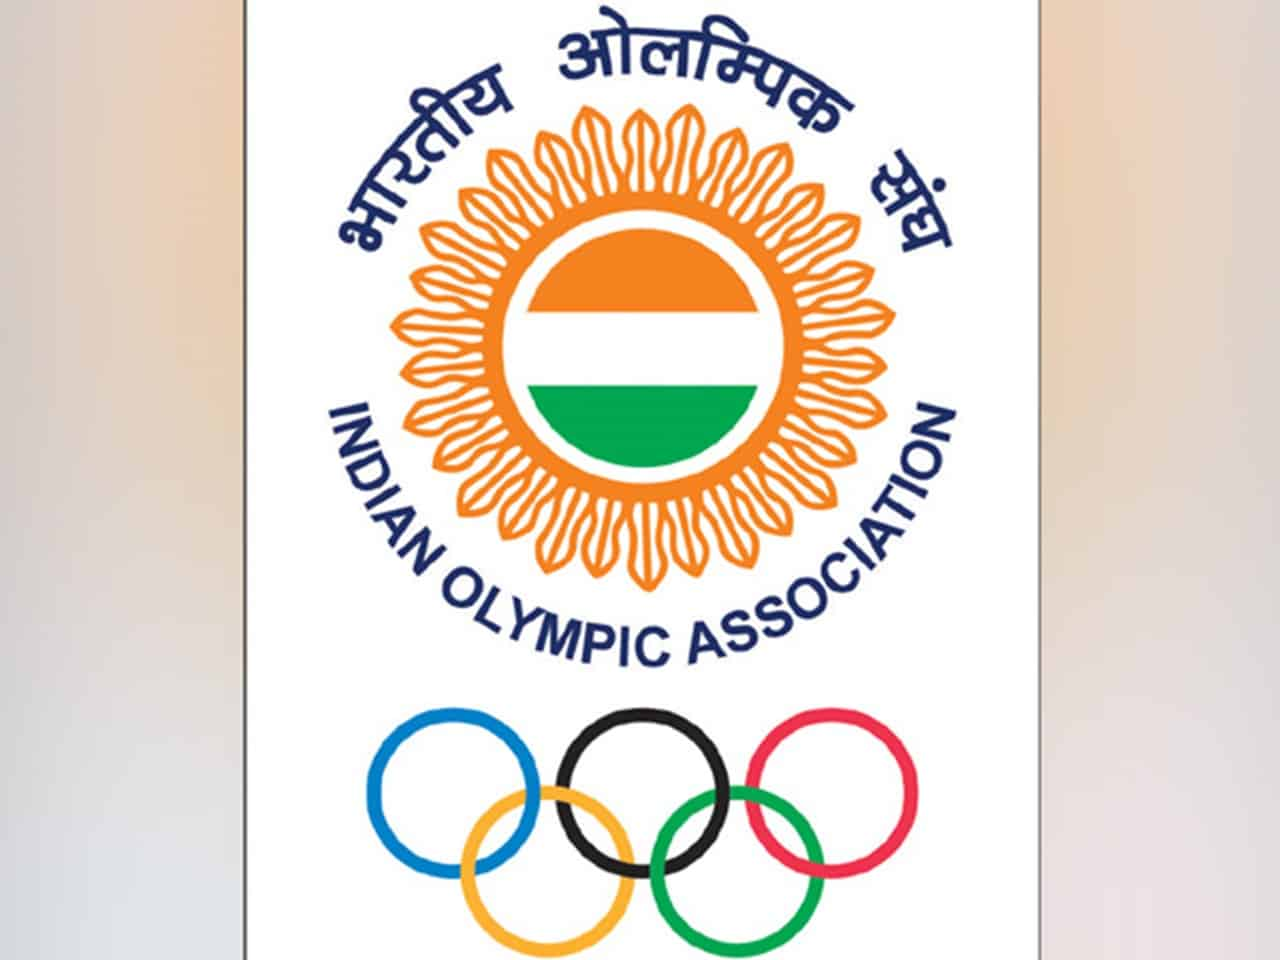 CWG 2022: Union Sports Ministry gives in-principle approval to hold shooting, archery events in India